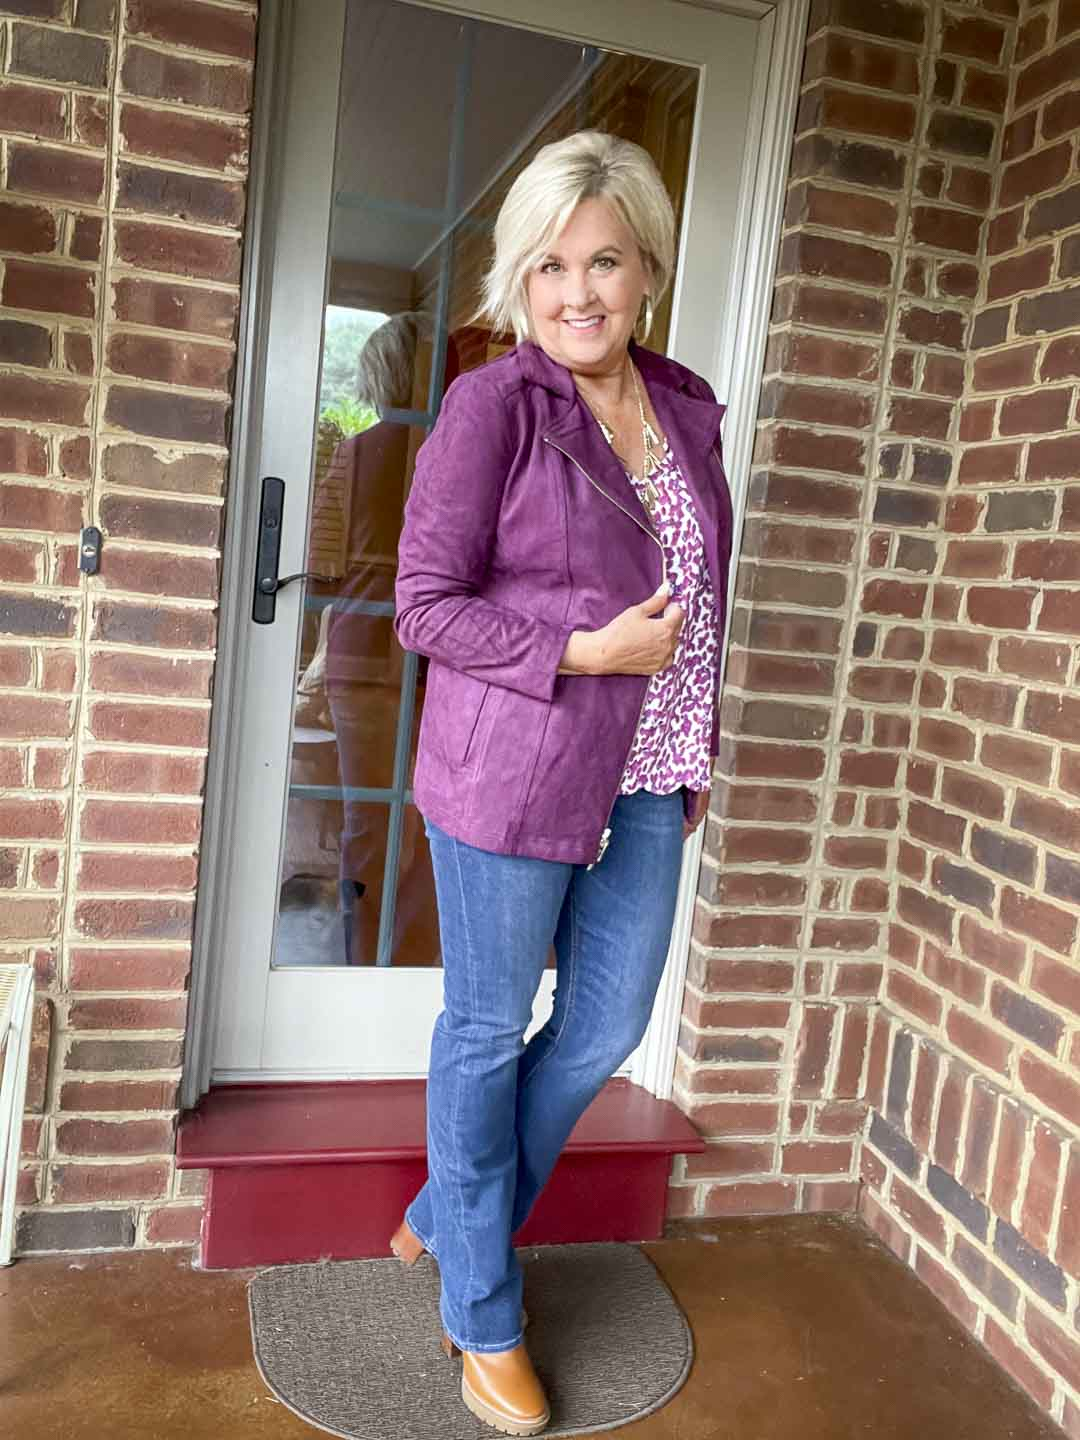 Over 40 fashion blogger, Tania Stephens is wearing a plum moto jacket, a printed camisole, bootcut jeans, and lug boots